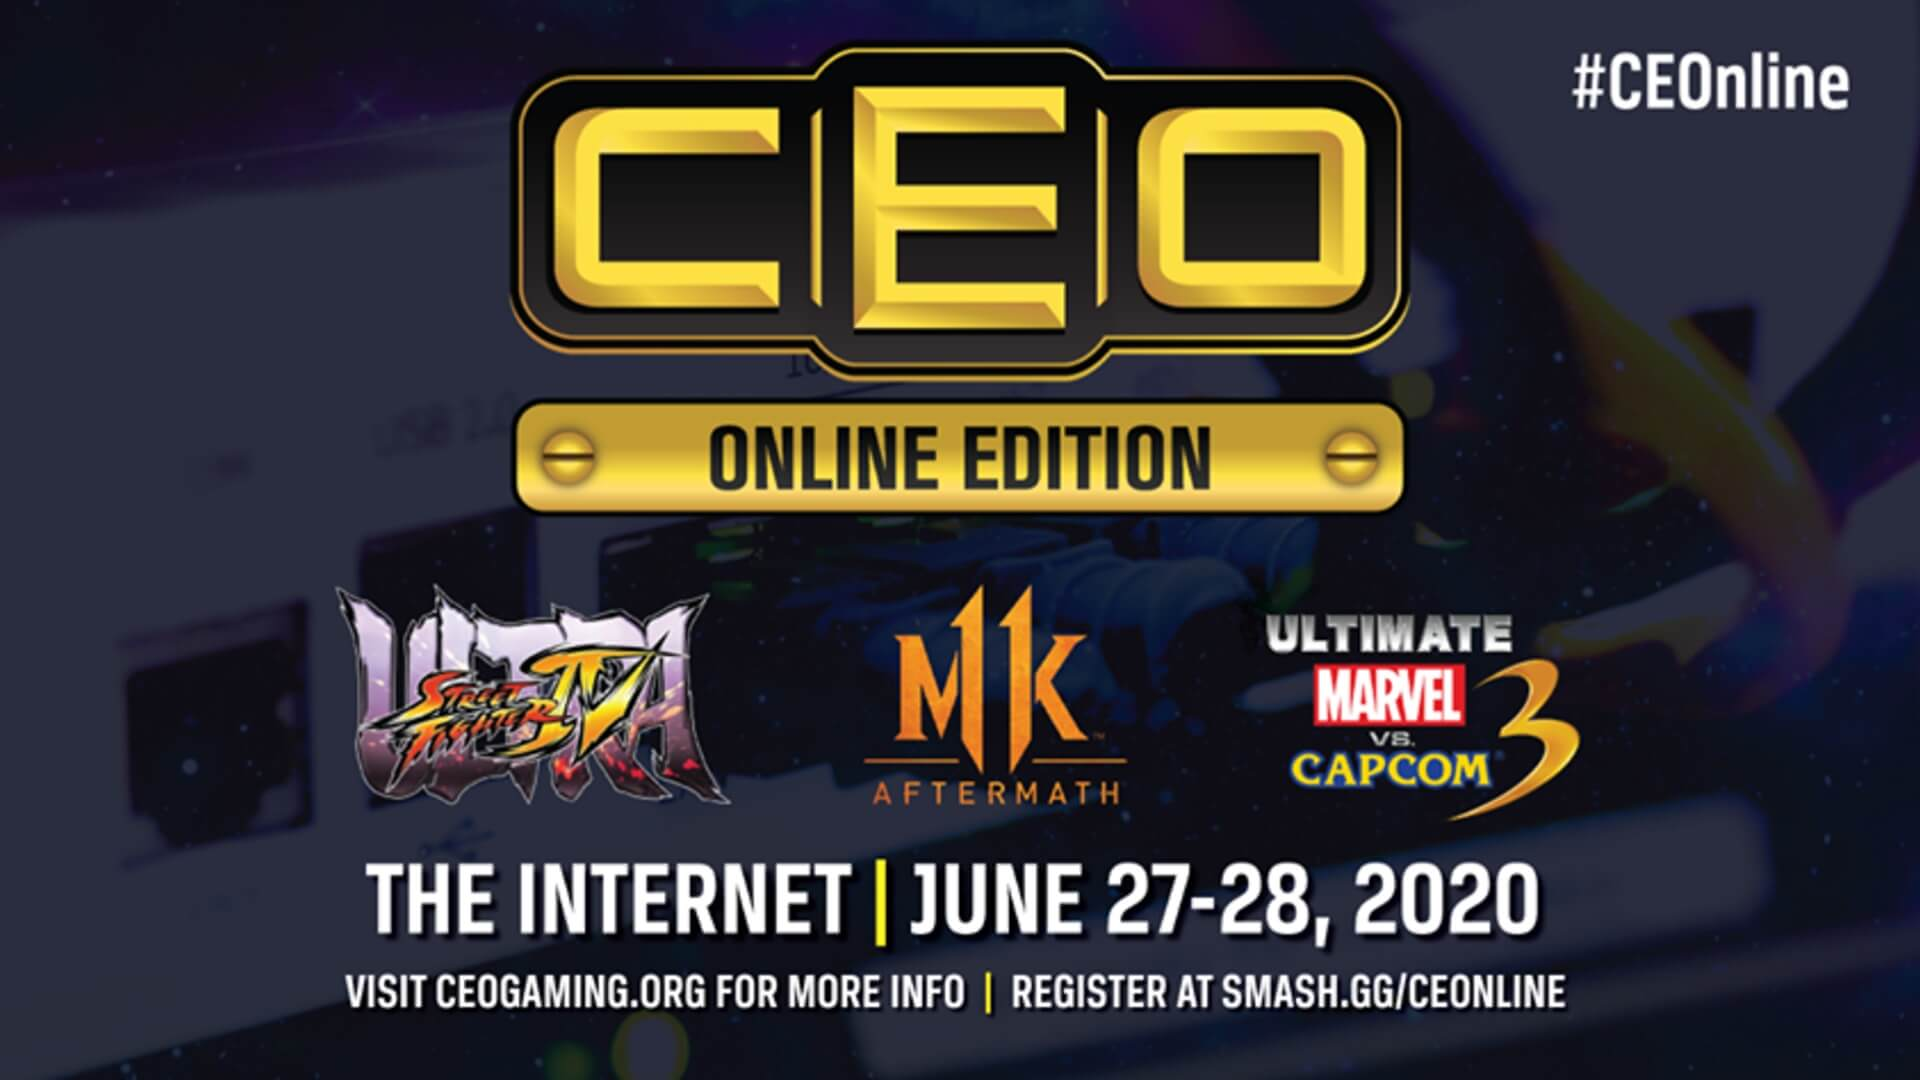 CEOnline announced with a lineup of 3 games